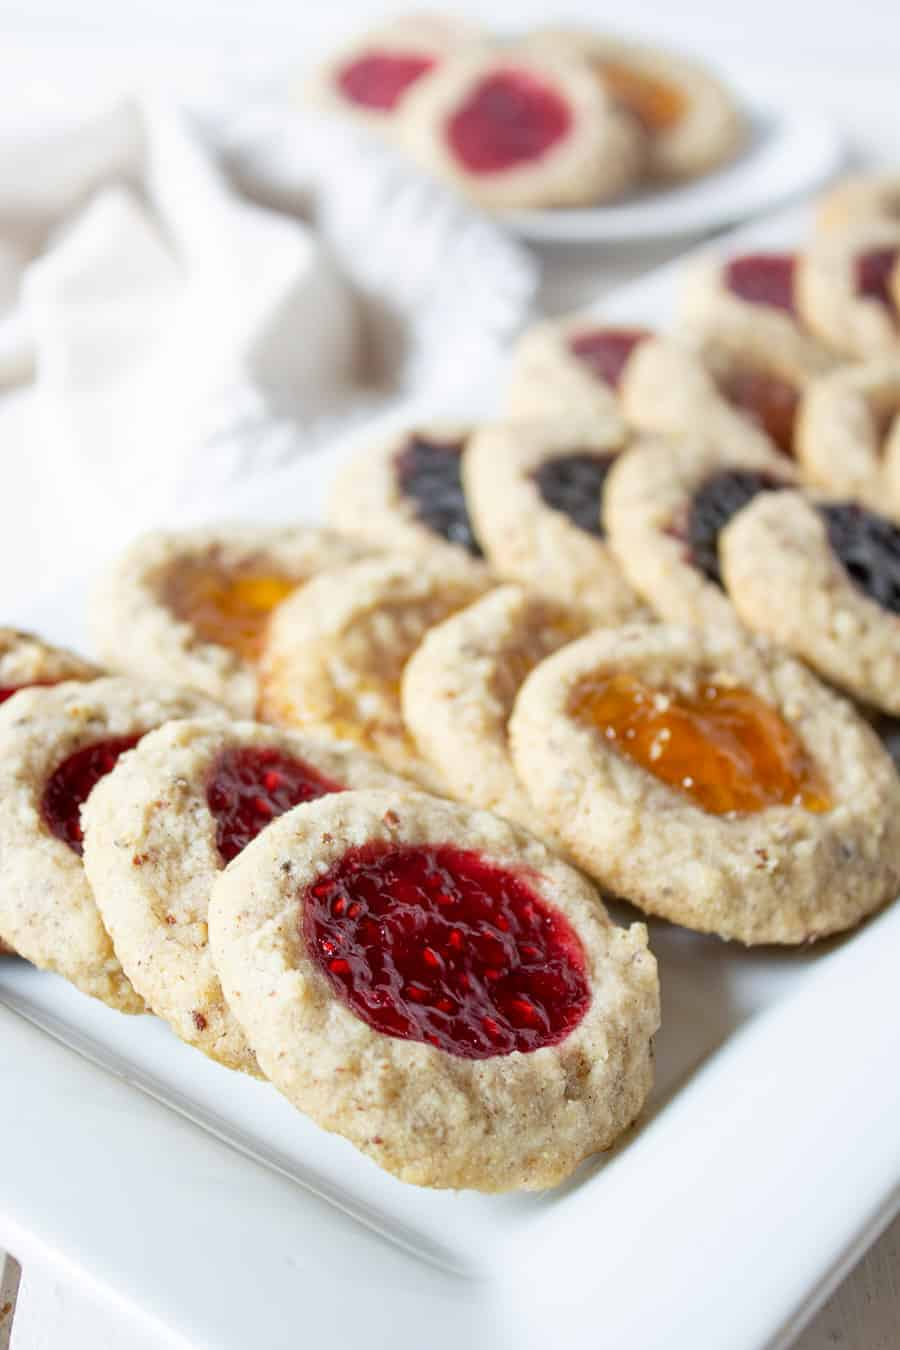 A white platter filled with cookies with different types of jam baked into the cookies.